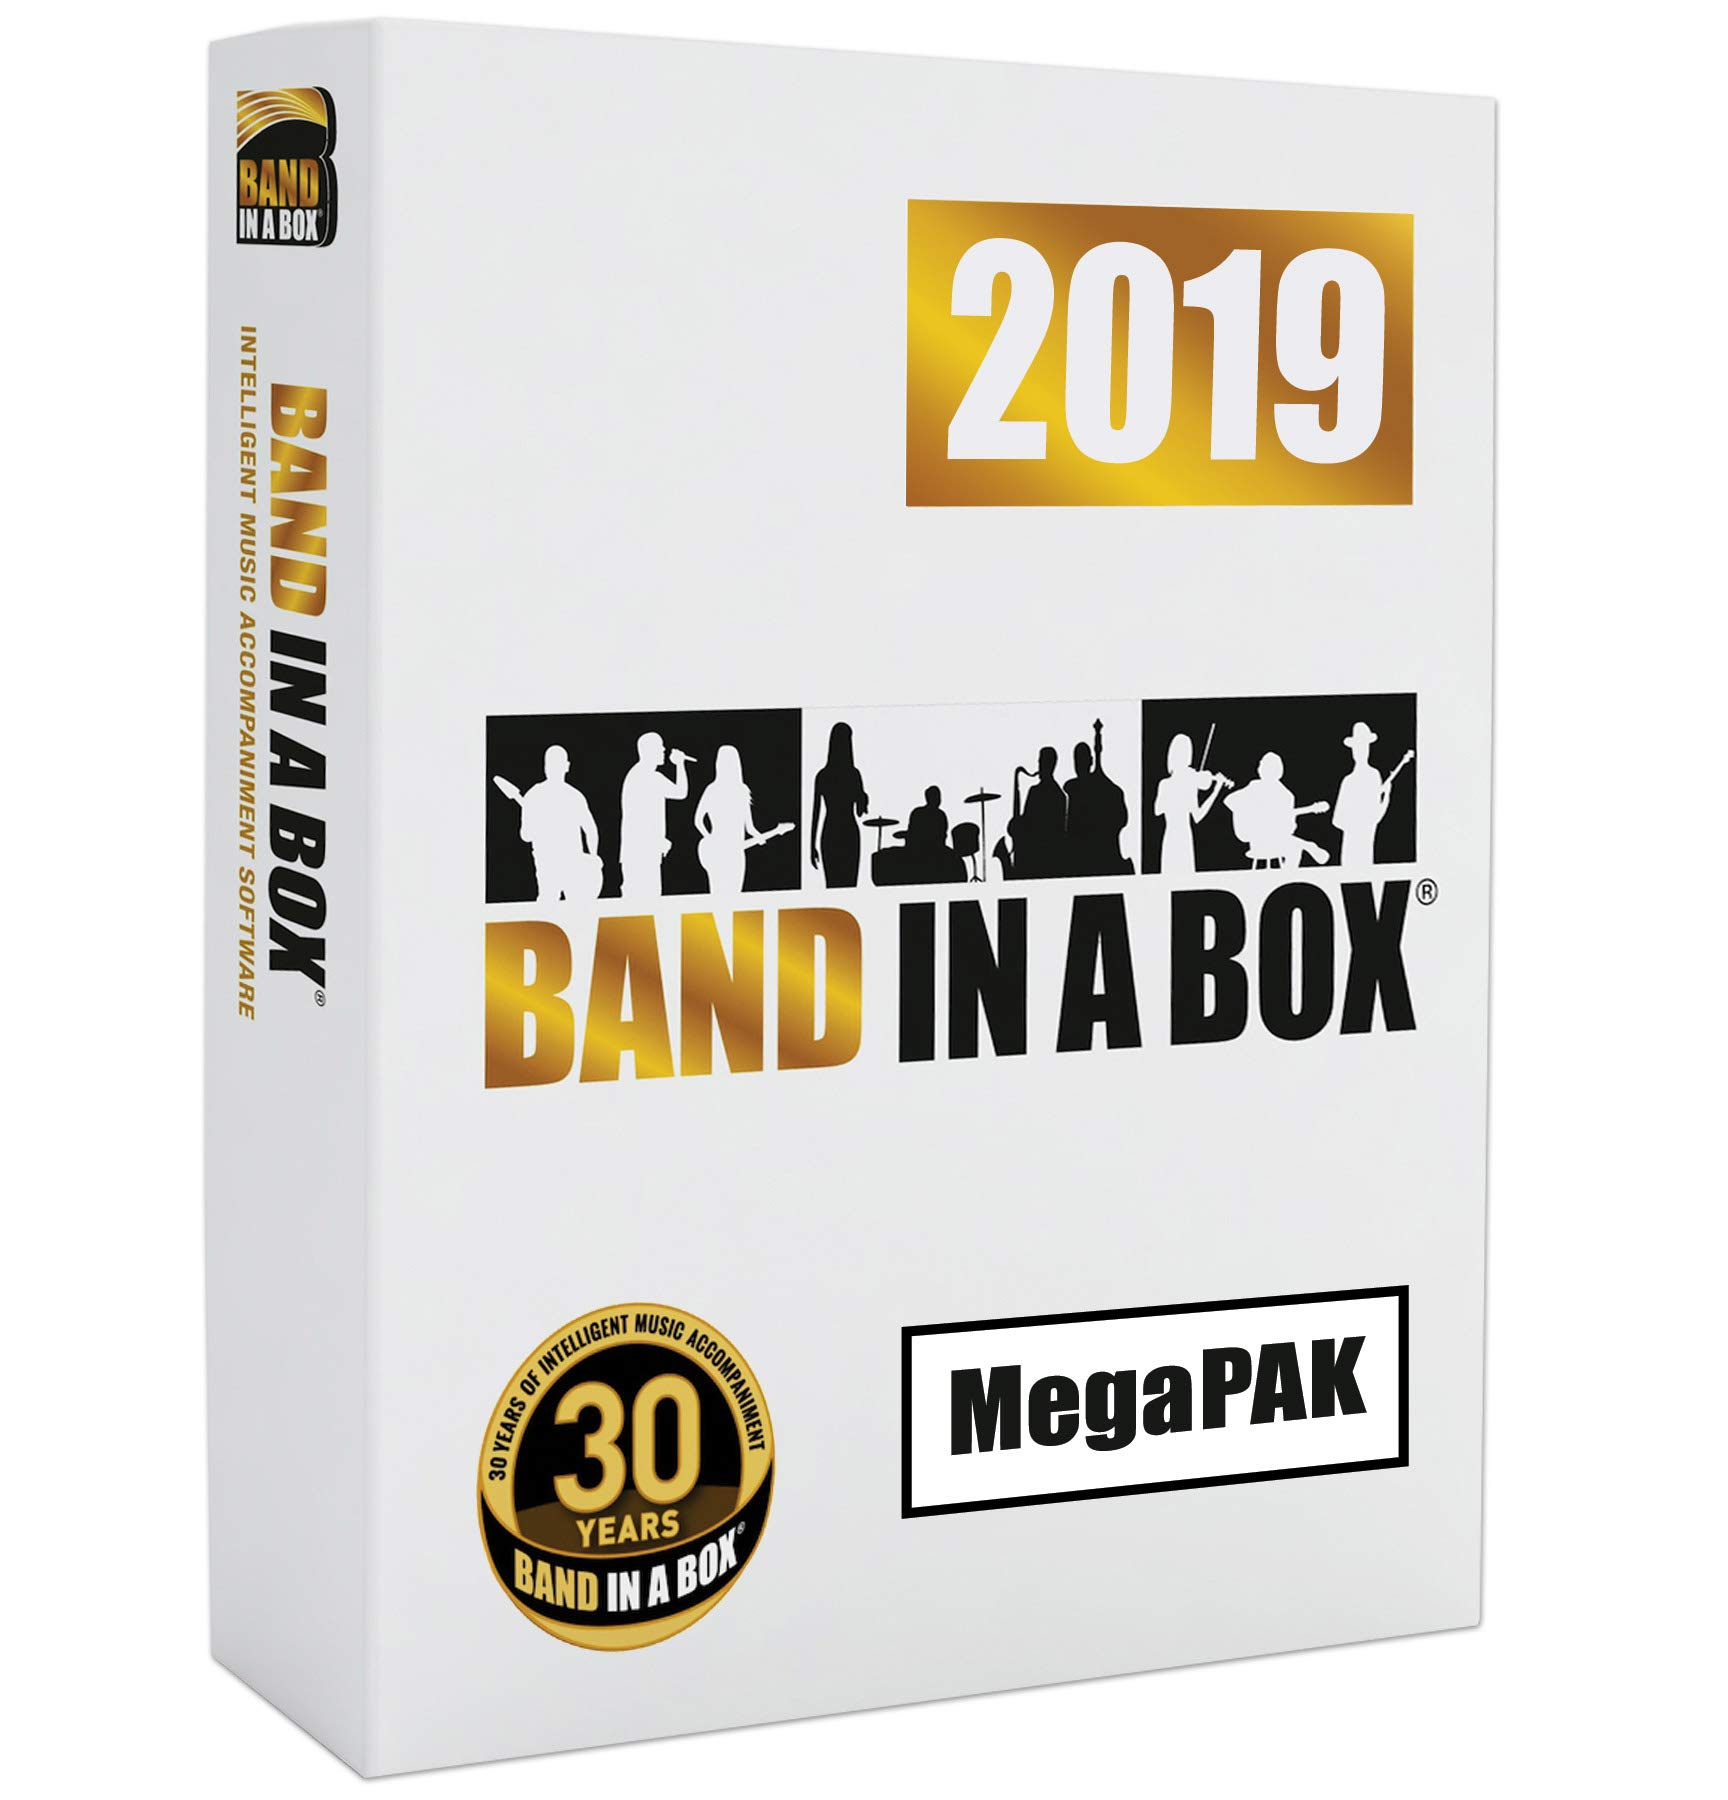 Band-in-a-Box 2019 MegaPAK [Windows USB Flash Drive] - Create your own backing tracks